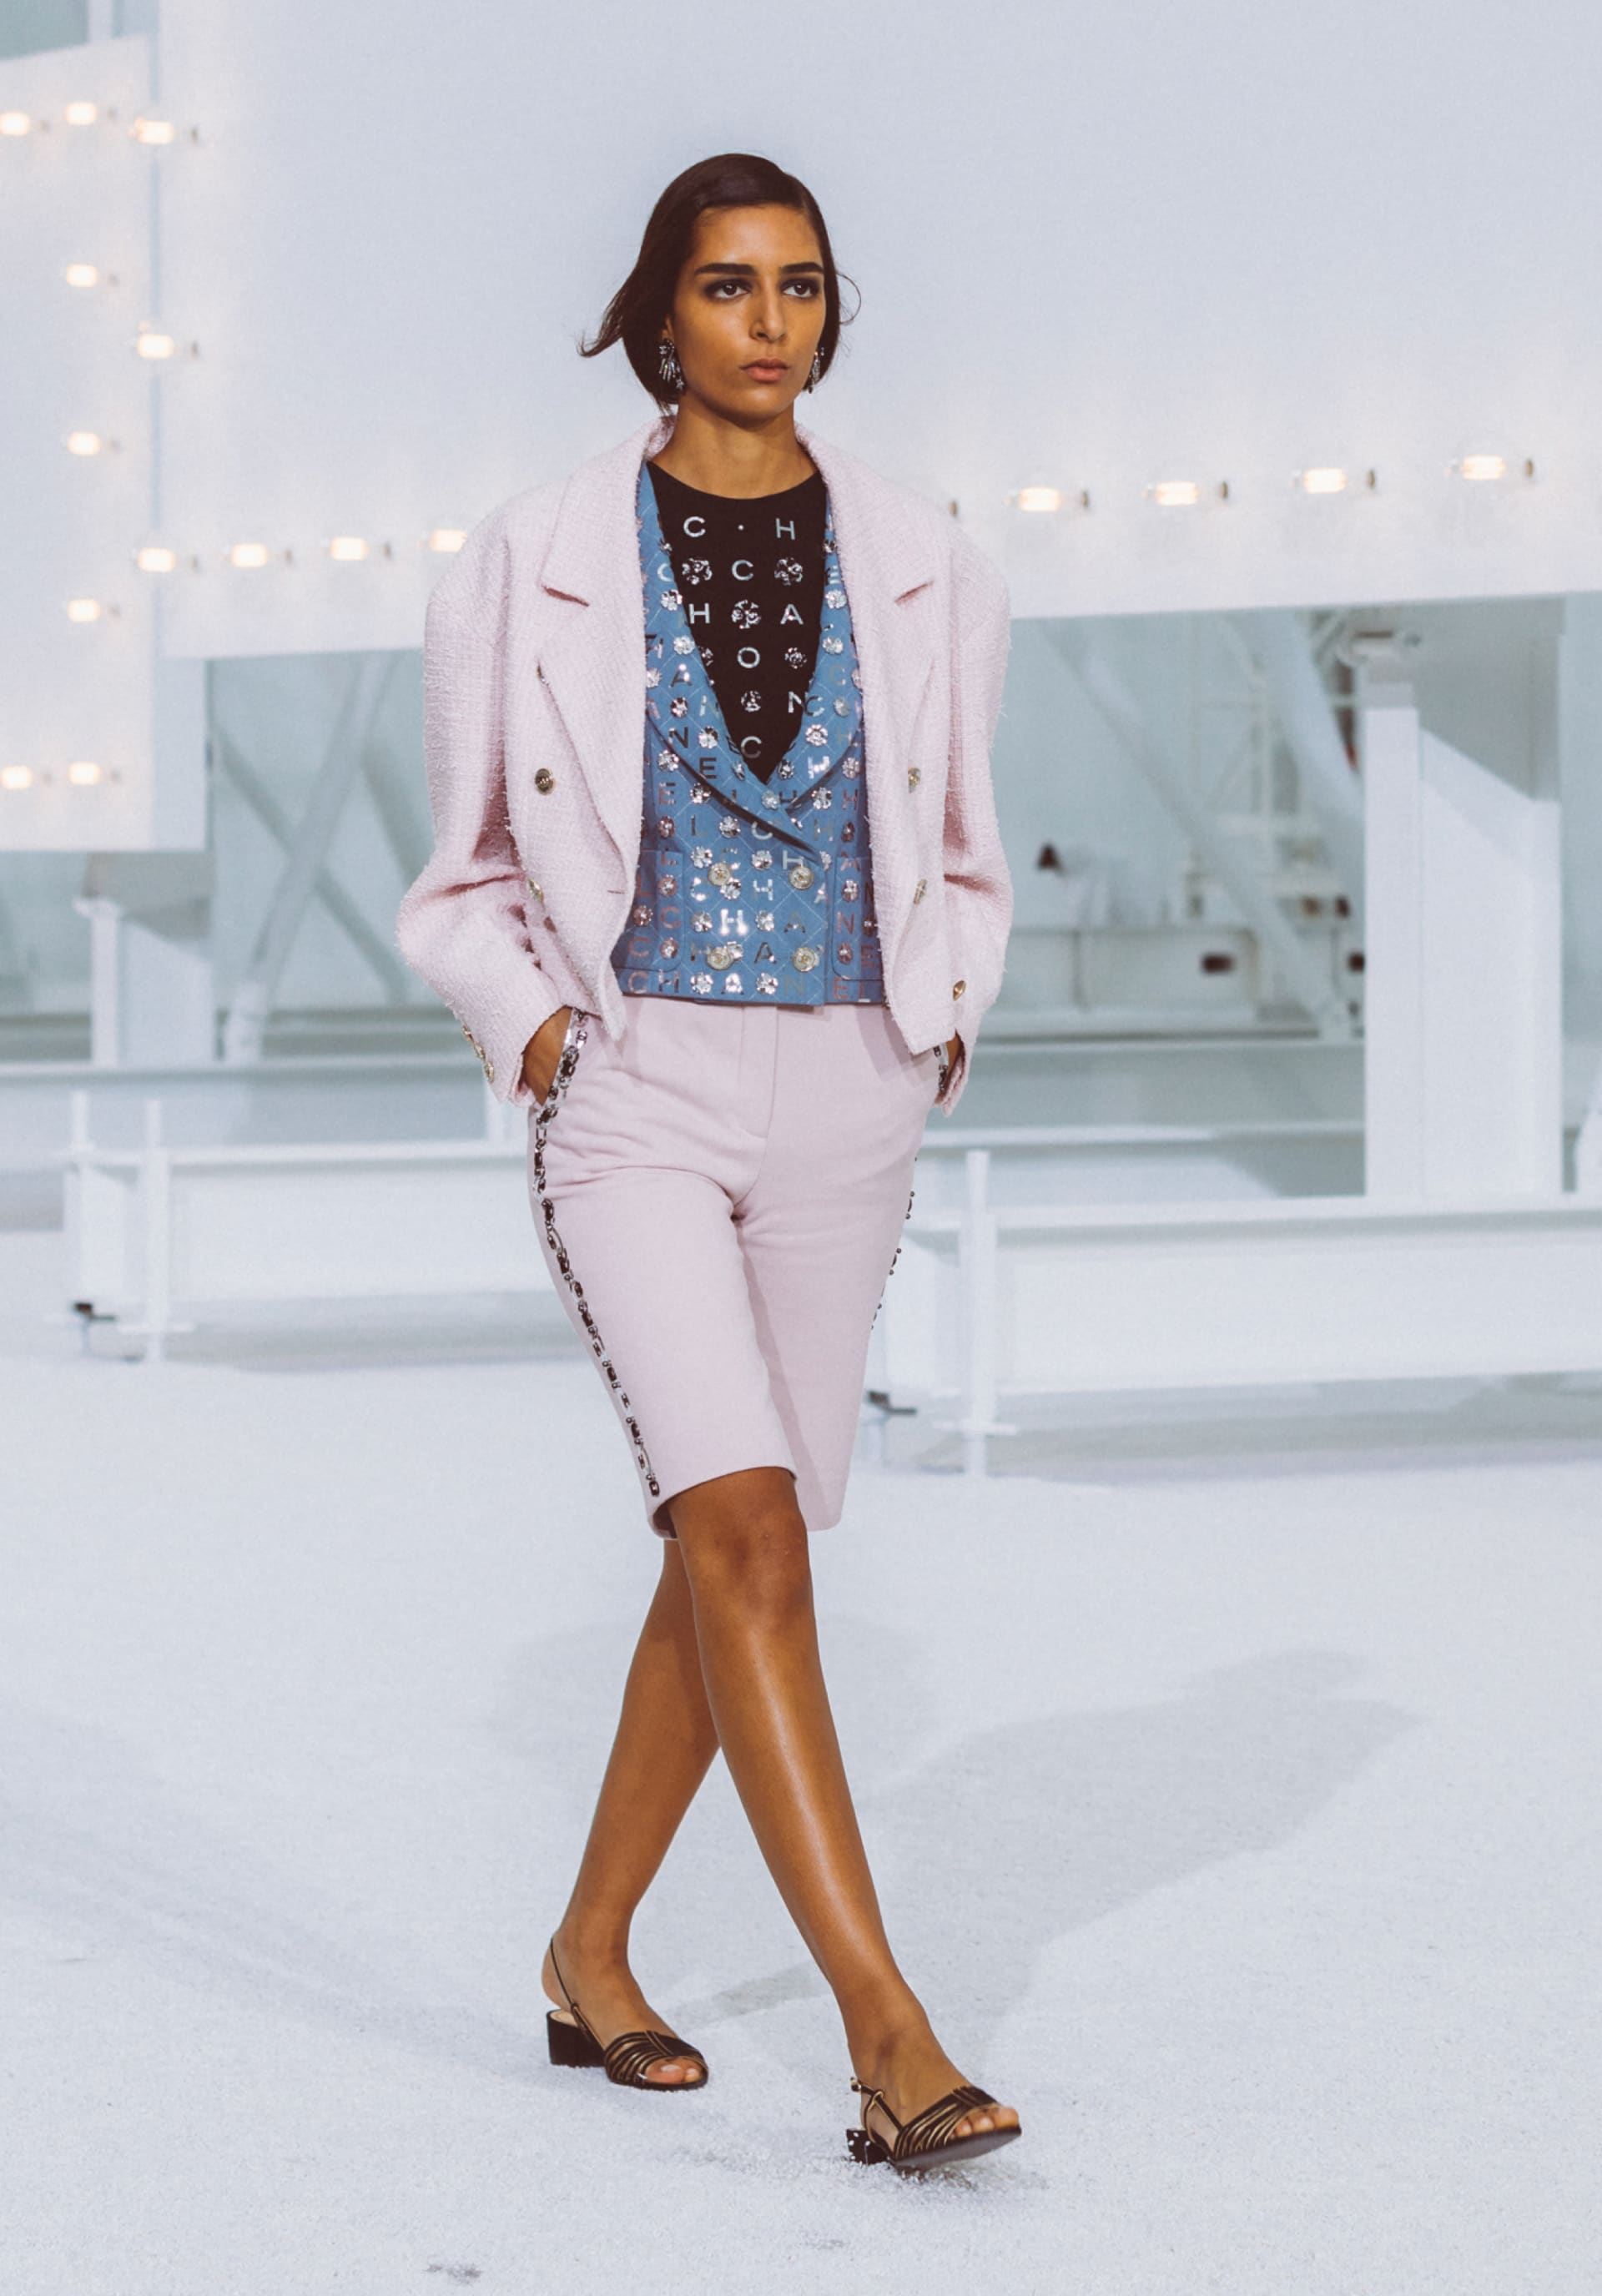 View 1 - Look5 - Spring-Summer 2021 - see full sized version